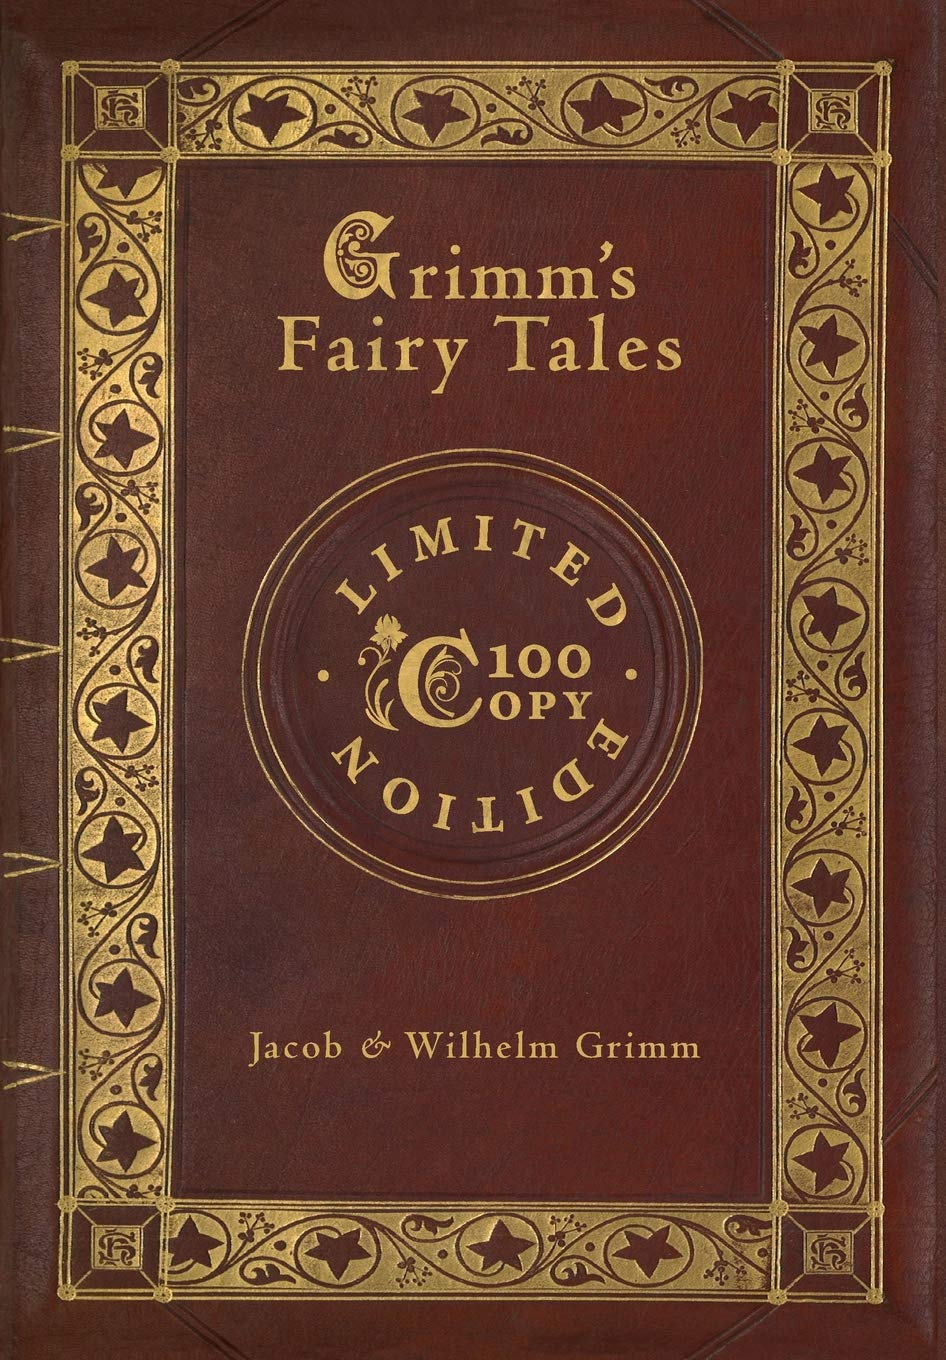 grimms fairy tales first edition 1812